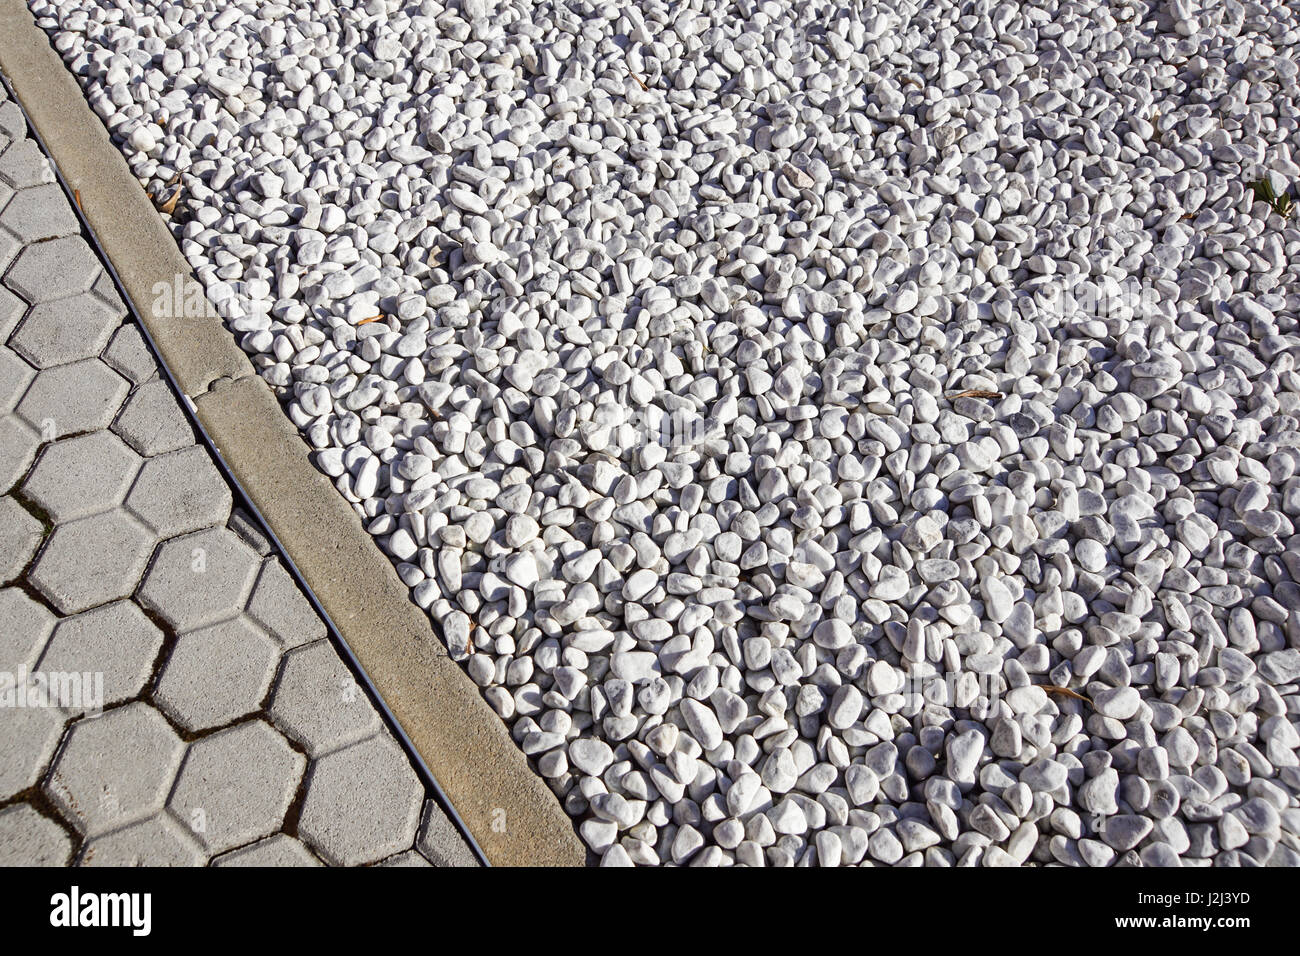 Floor design with terrace tiles and ornamental gravel various floor design with terrace tiles and ornamental gravel various materials for flooring in the garden building materials for gardening professional gardening dailygadgetfo Images